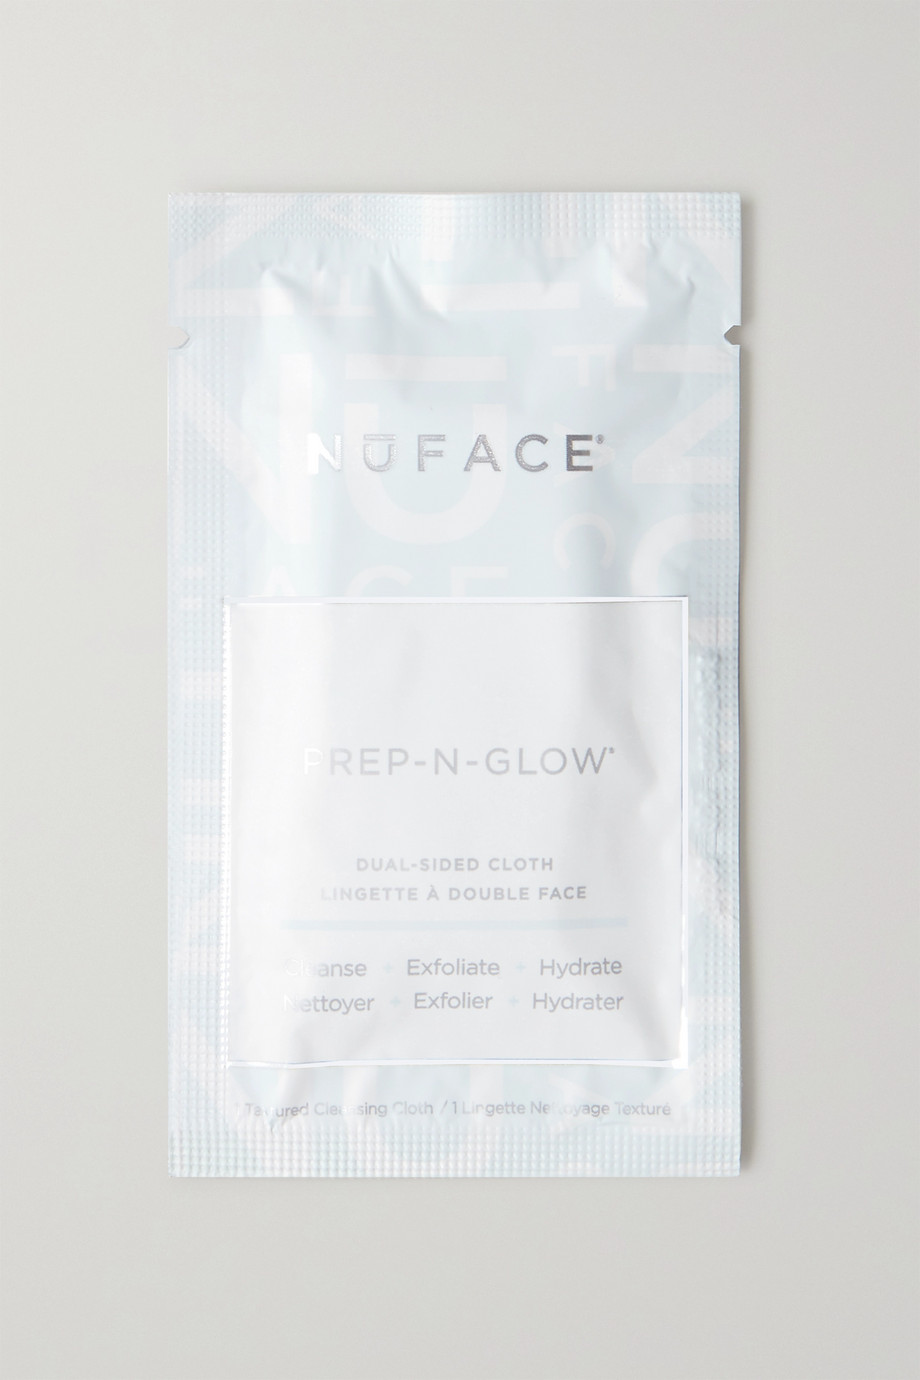 NuFACE Prep-N-Glow Cleansing Cloths x 20